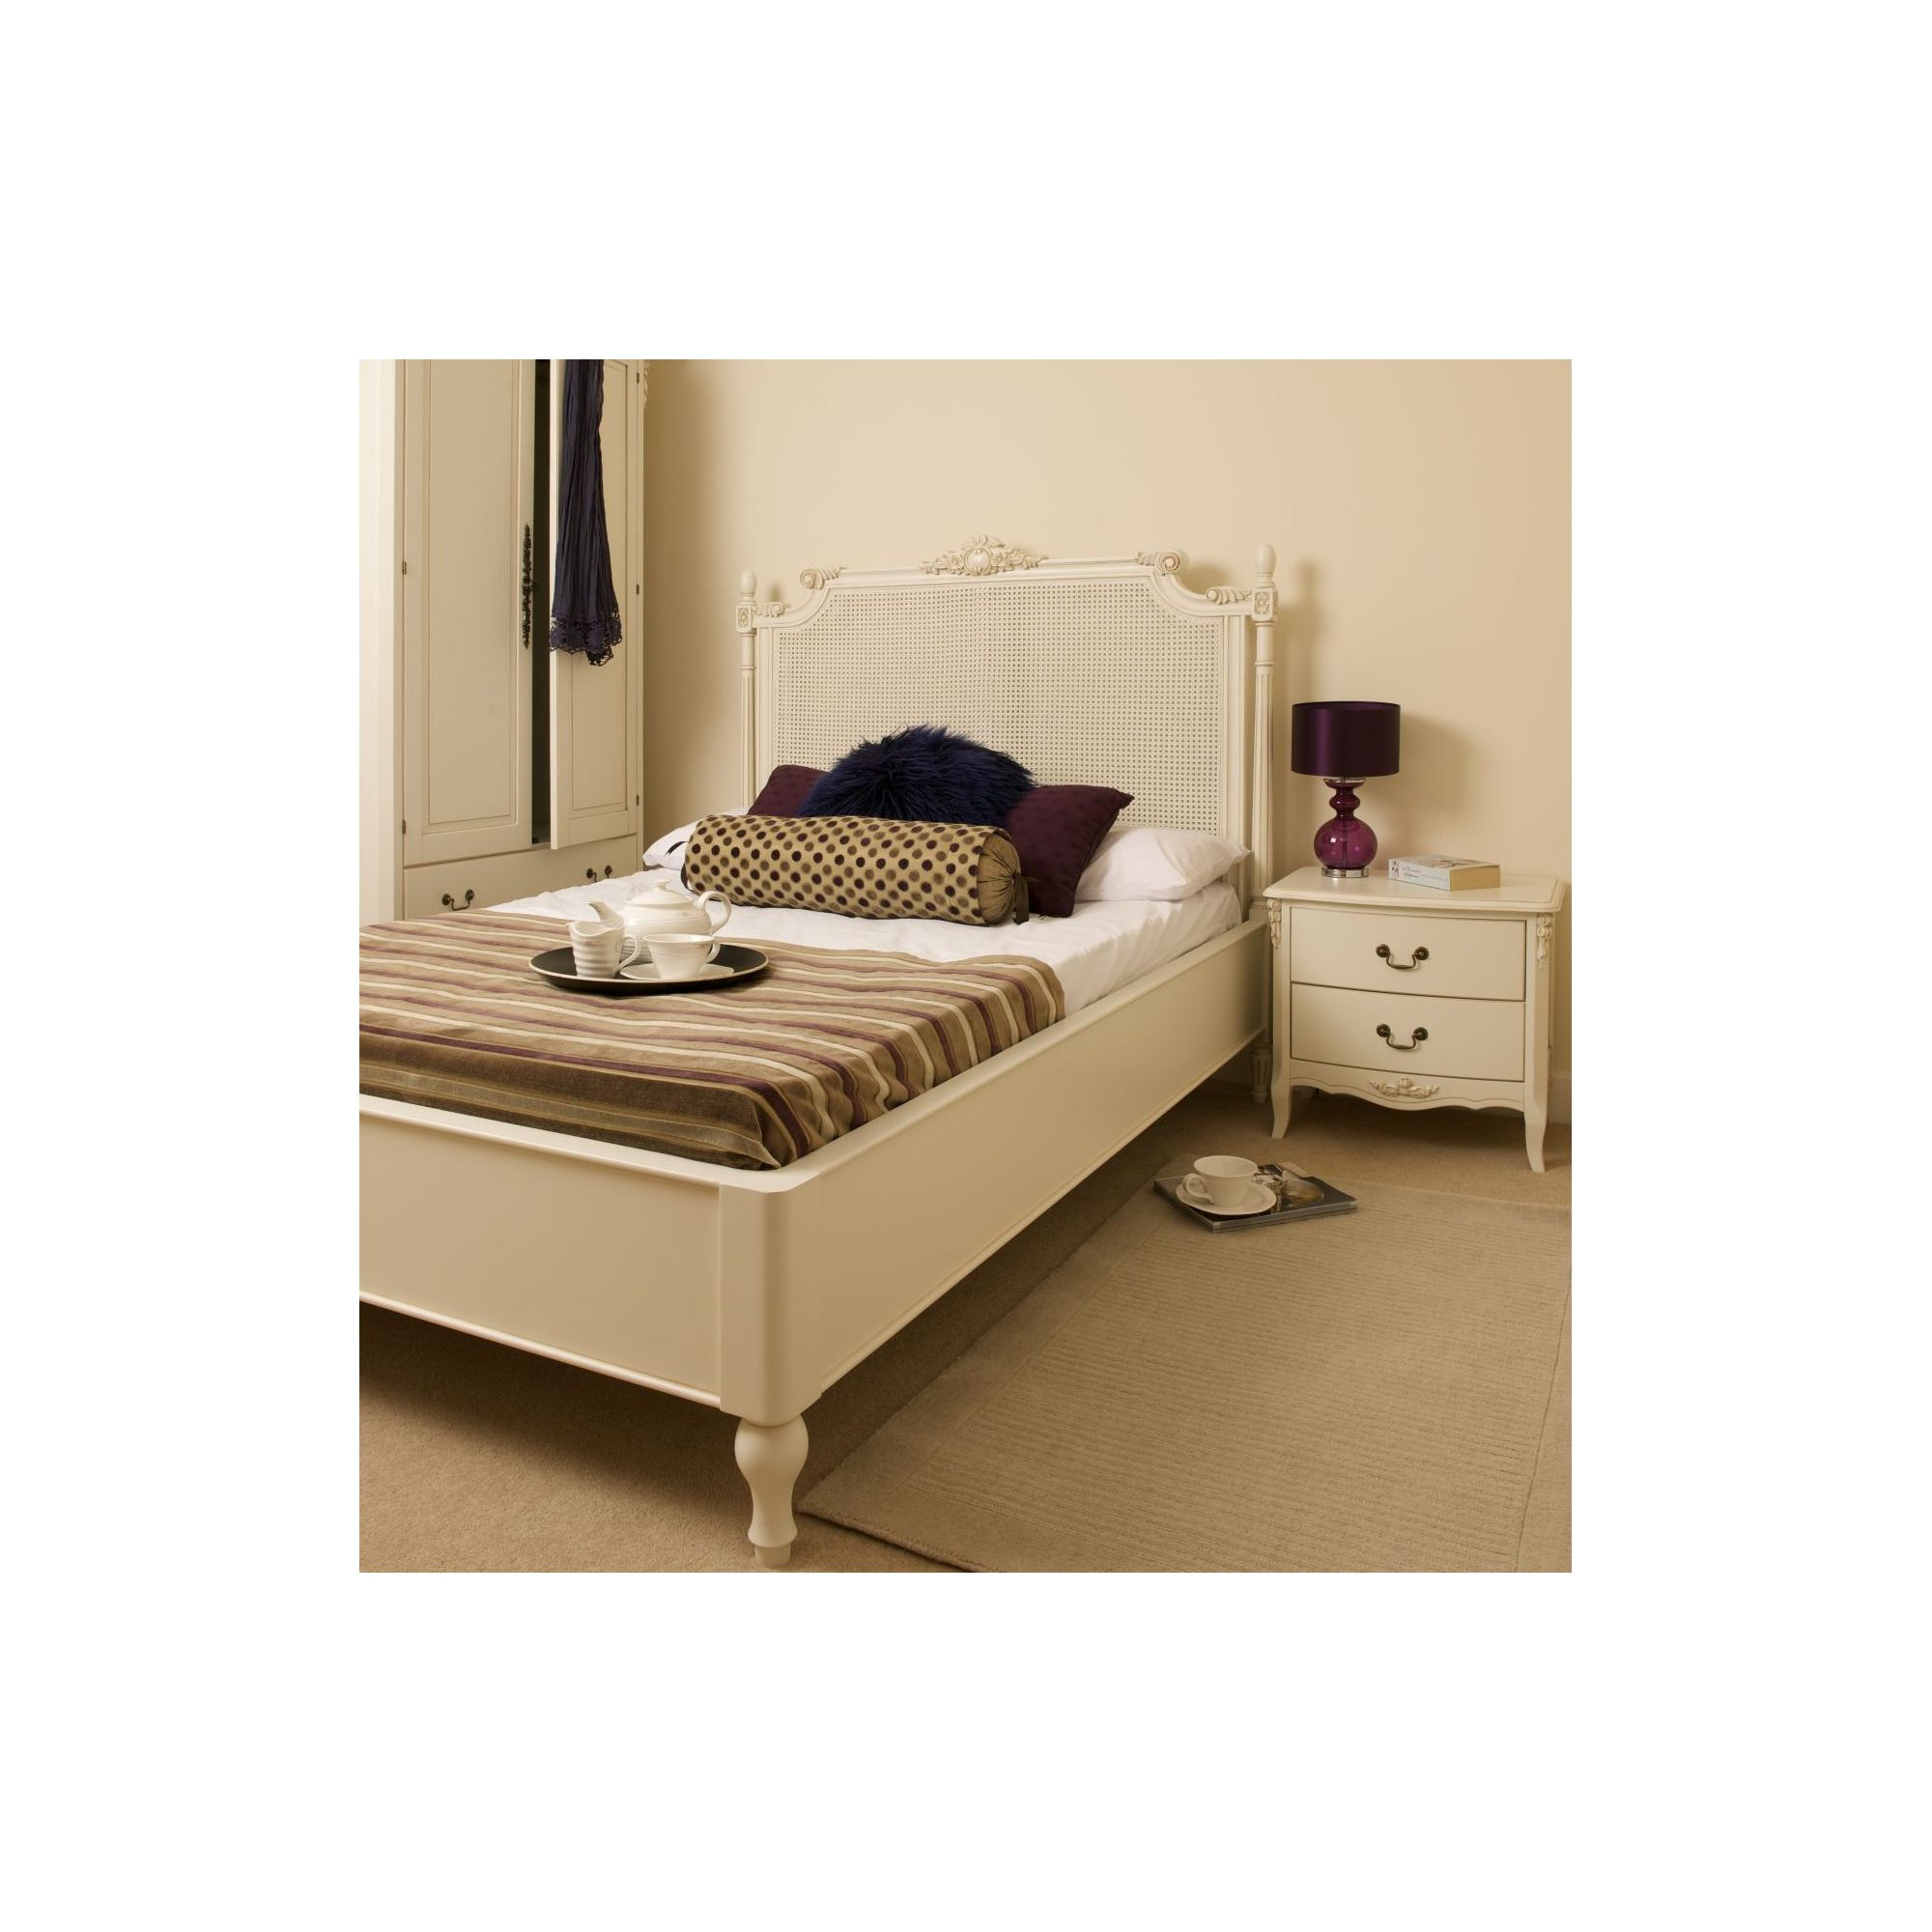 Kelburn Furniture Laurent Rattan Bed - Double at Tescos Direct